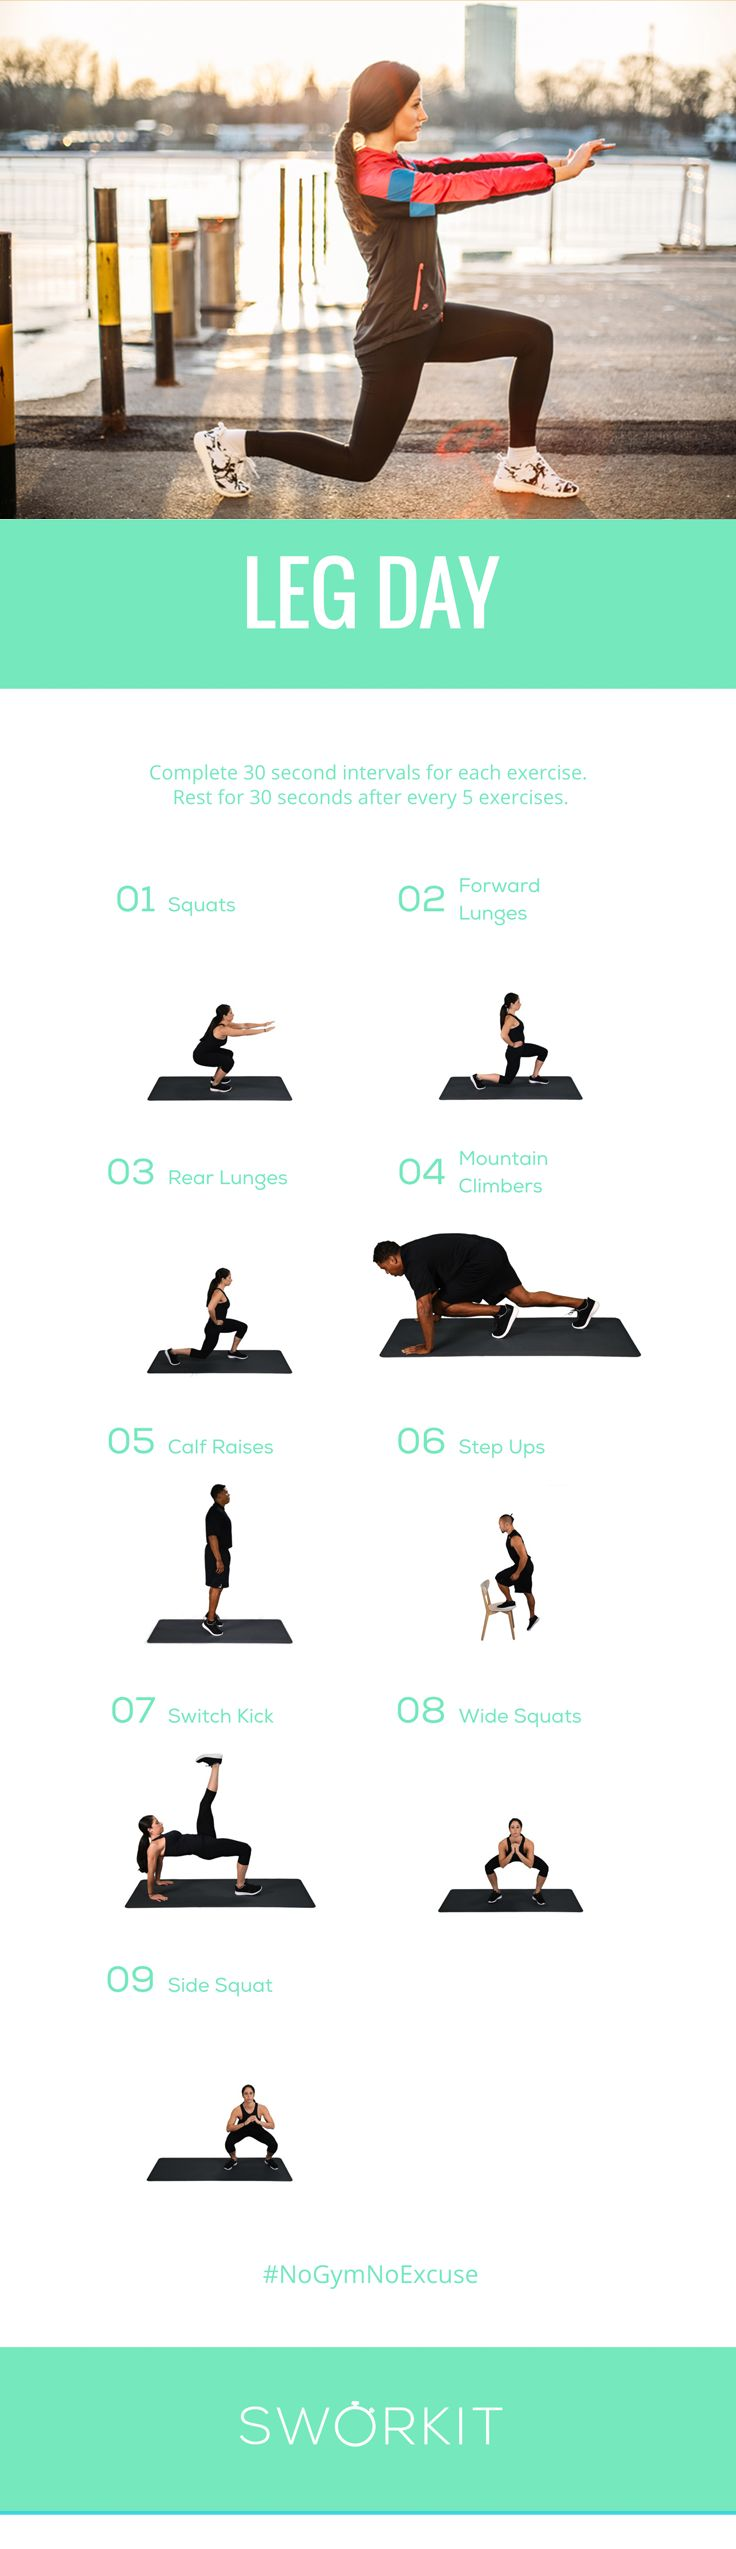 Easter is around the corner so we want you to be ready to hop hop around! Therefore we have this really great leg workout ;) Want to download our Leg Day workout? Download Sworkit and follow us on social media for the links!